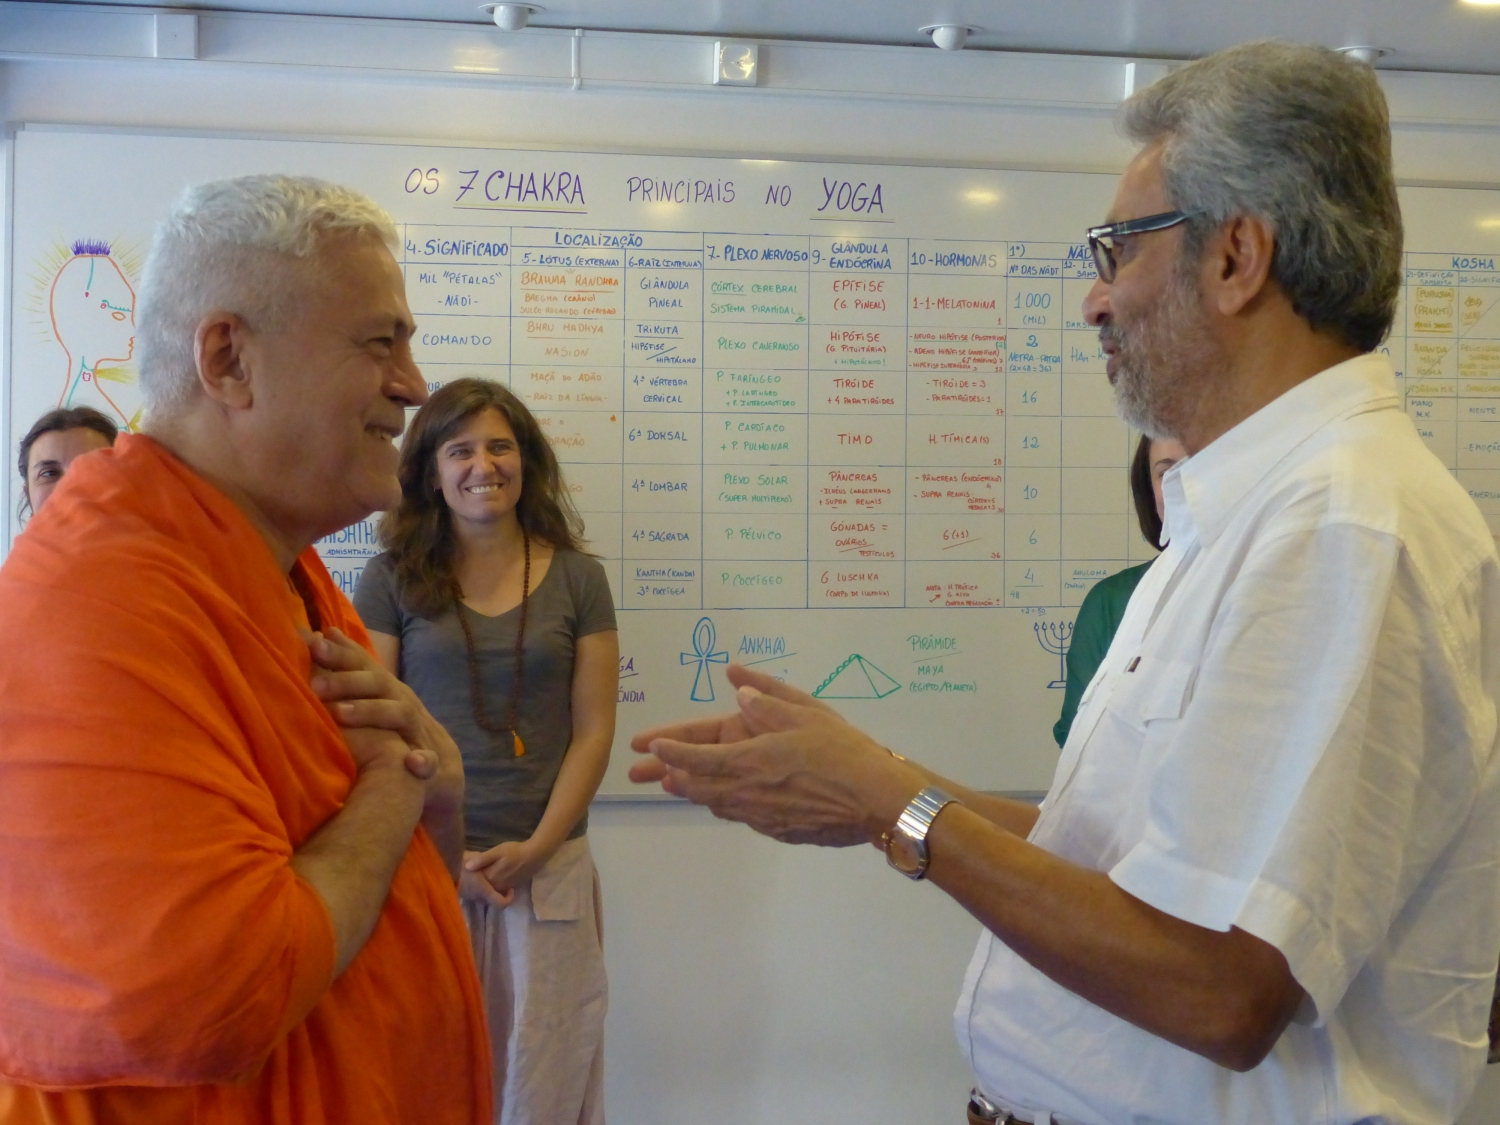 Visit of Bawa Jain -  Secretary-General for the World Council of Religious Leaders - at the Headquarters of the Portuguese Yoga Confederation, Lisboa – 2015